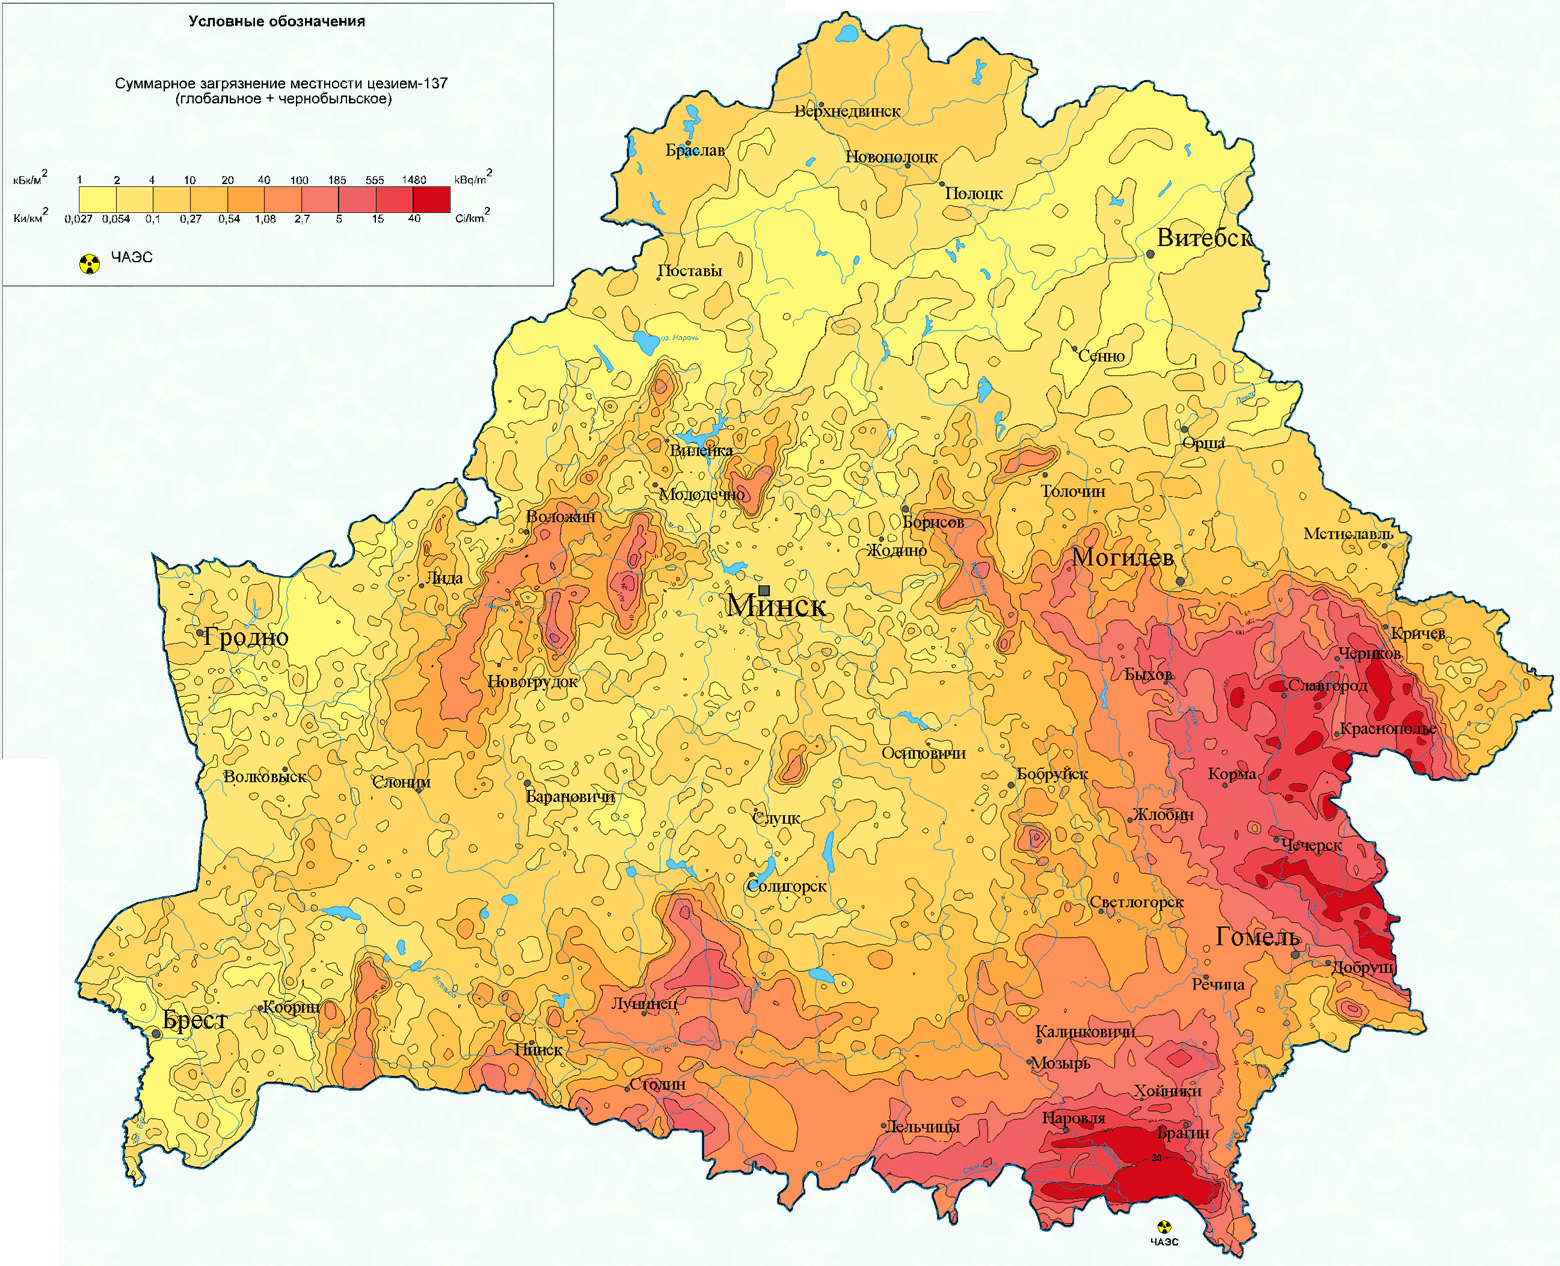 Surface ground depostiton of Caesium-137 released in Belorussia after the Chernobyl accident